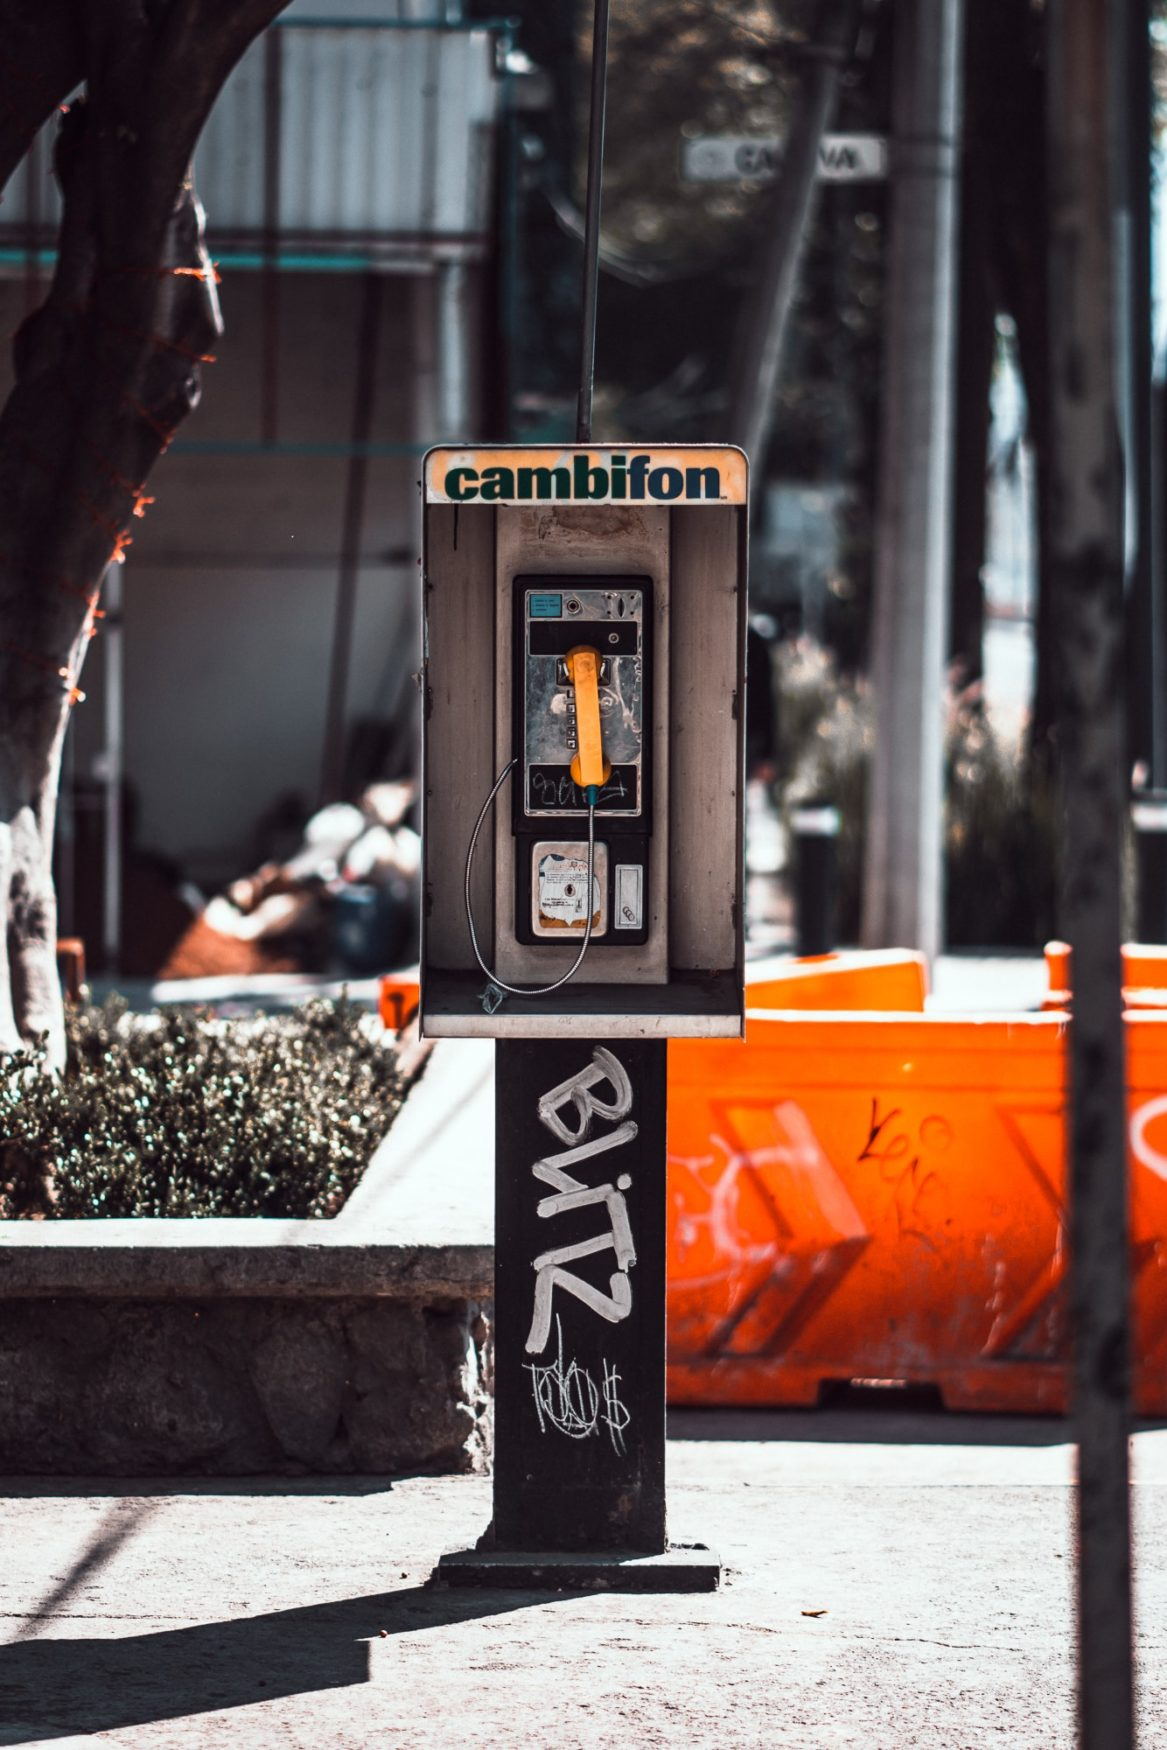 mexico city pay phone with graffiti